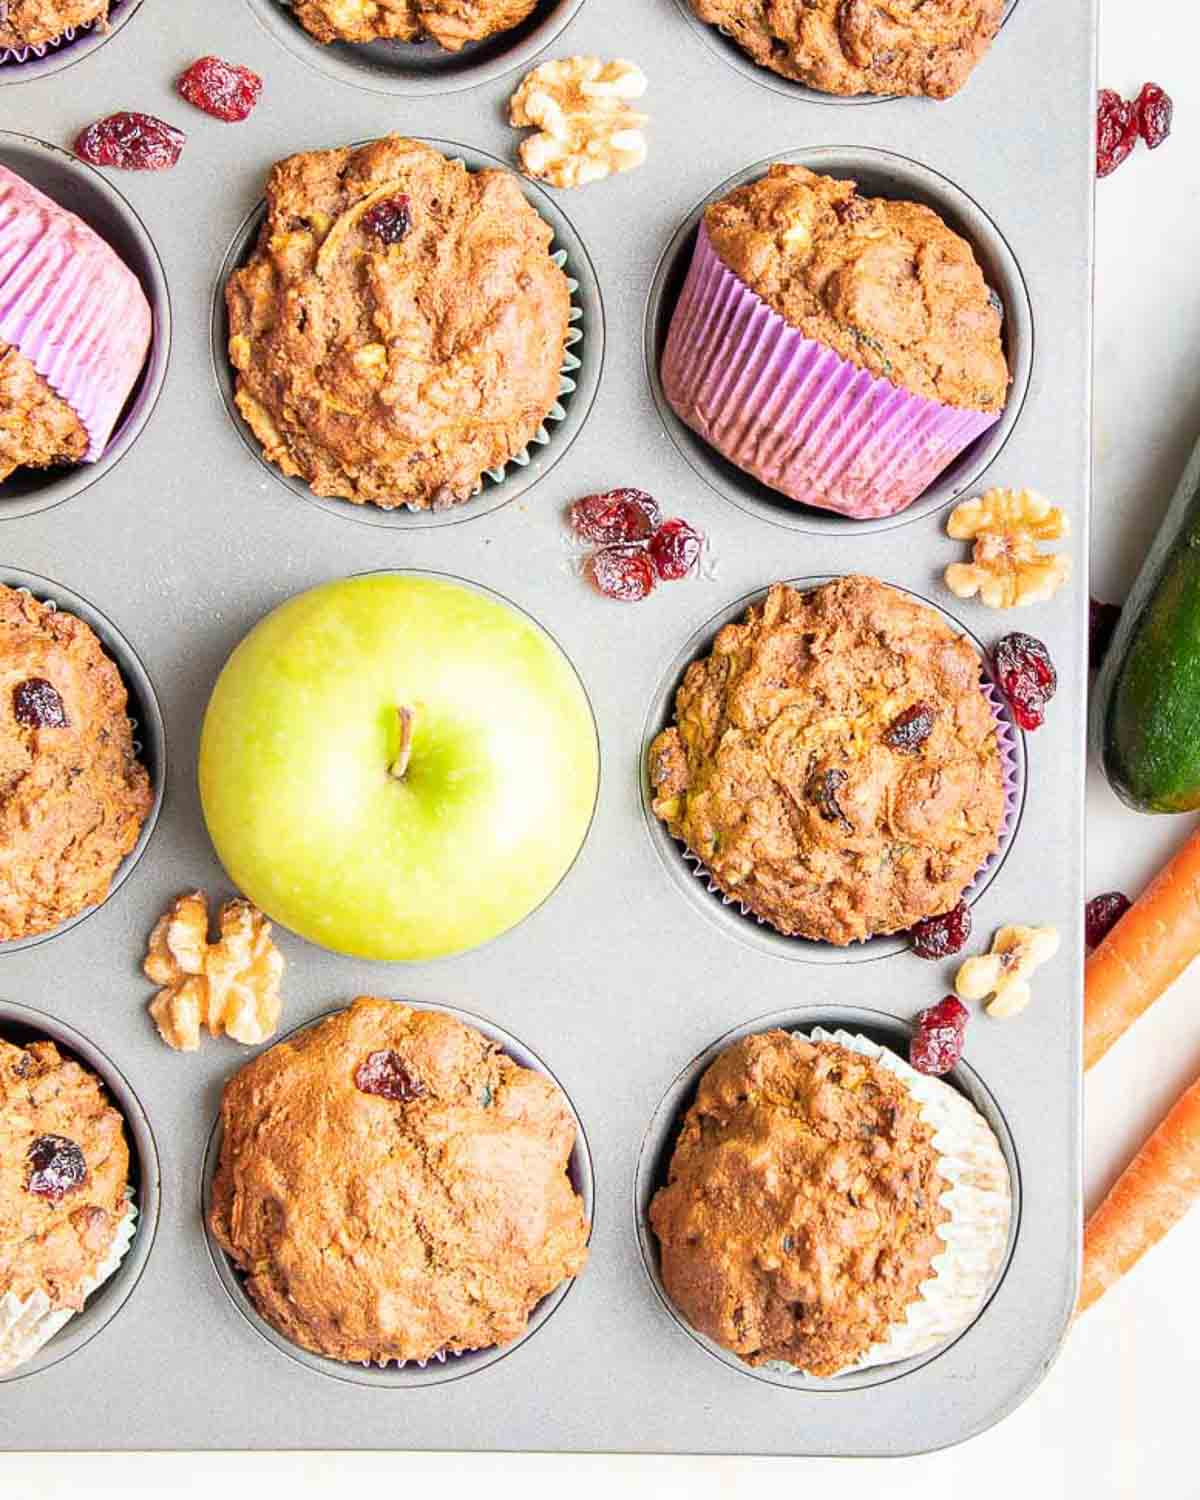 A tray of muffins with a green apple in the middles and carrots and zucchini beside the tray.